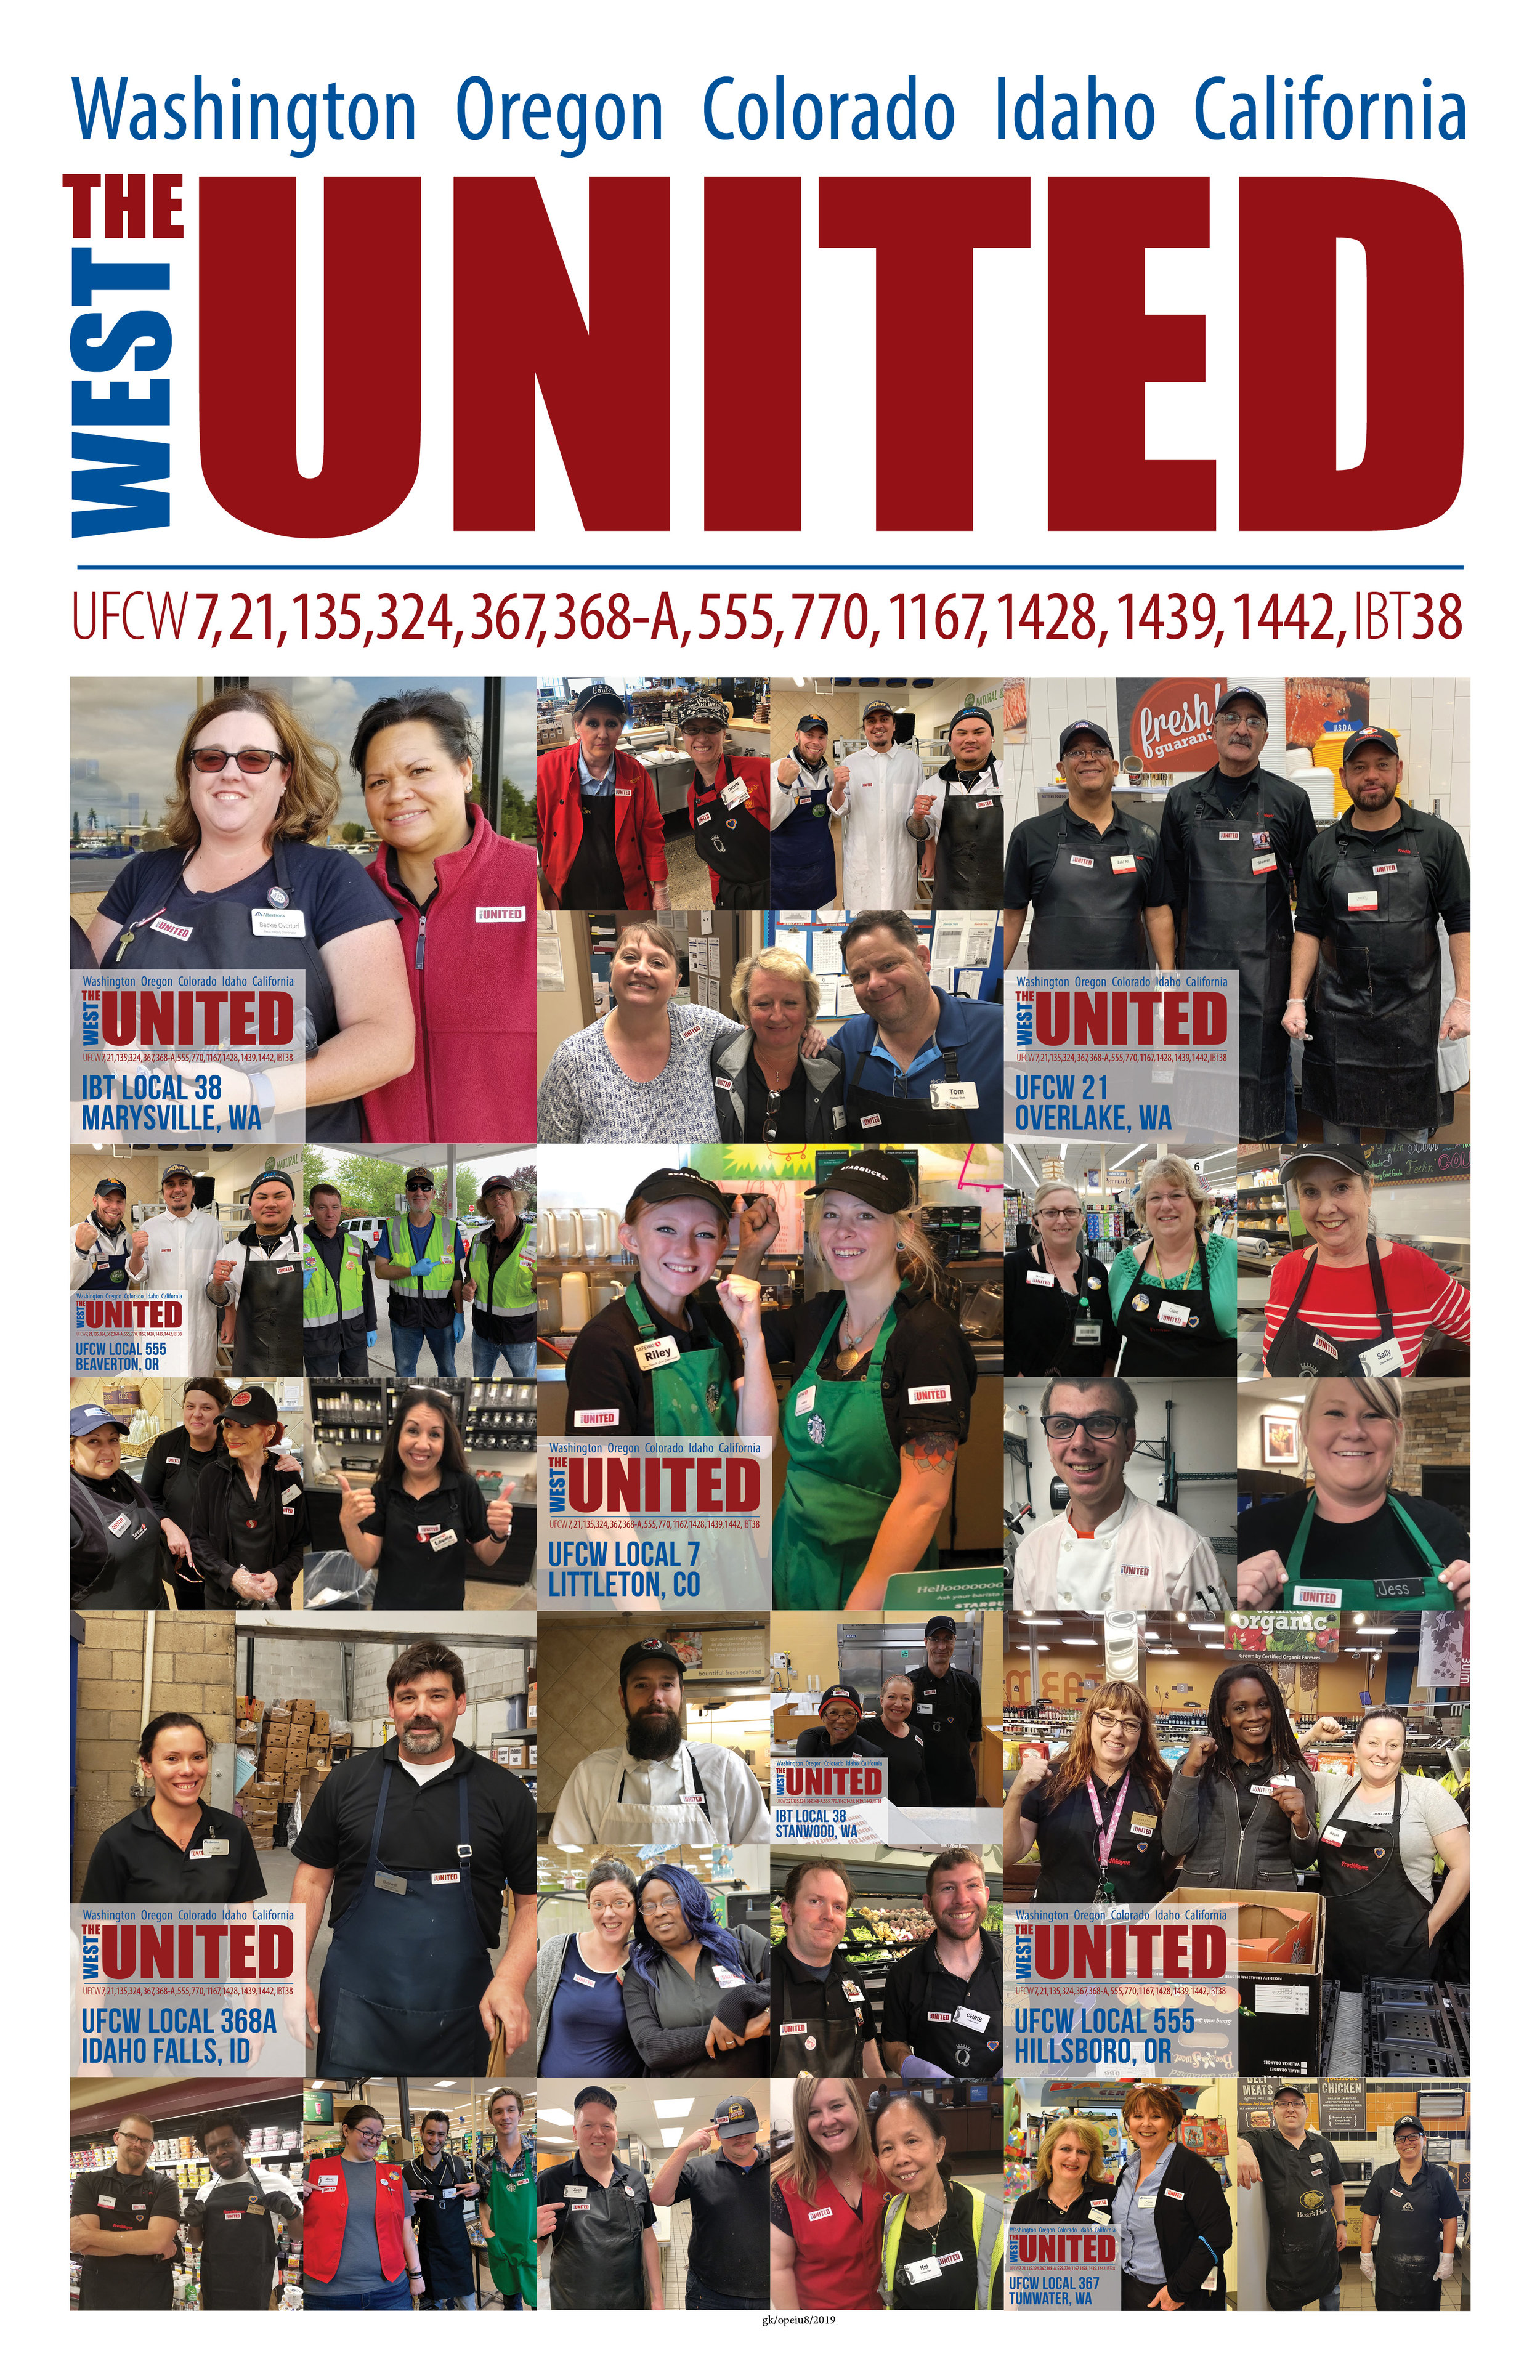 2019 The West United poster